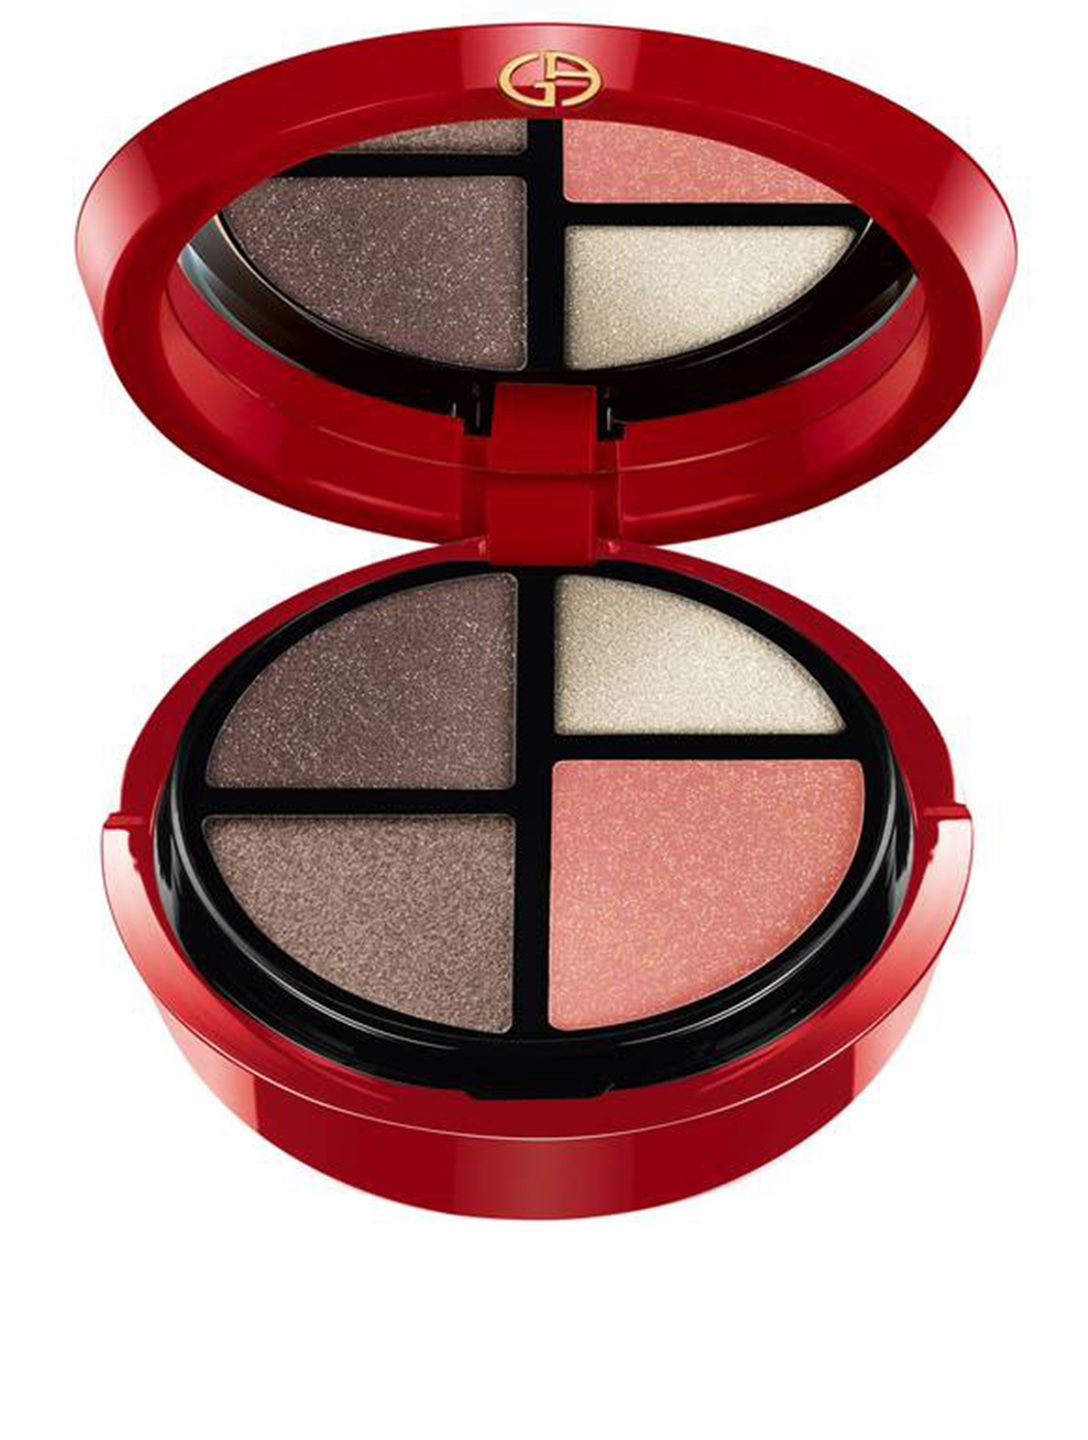 GIORGIO ARMANI Eye Quattro Fantasy Eyeshadow Palette - Limited Edition Beauty Multi